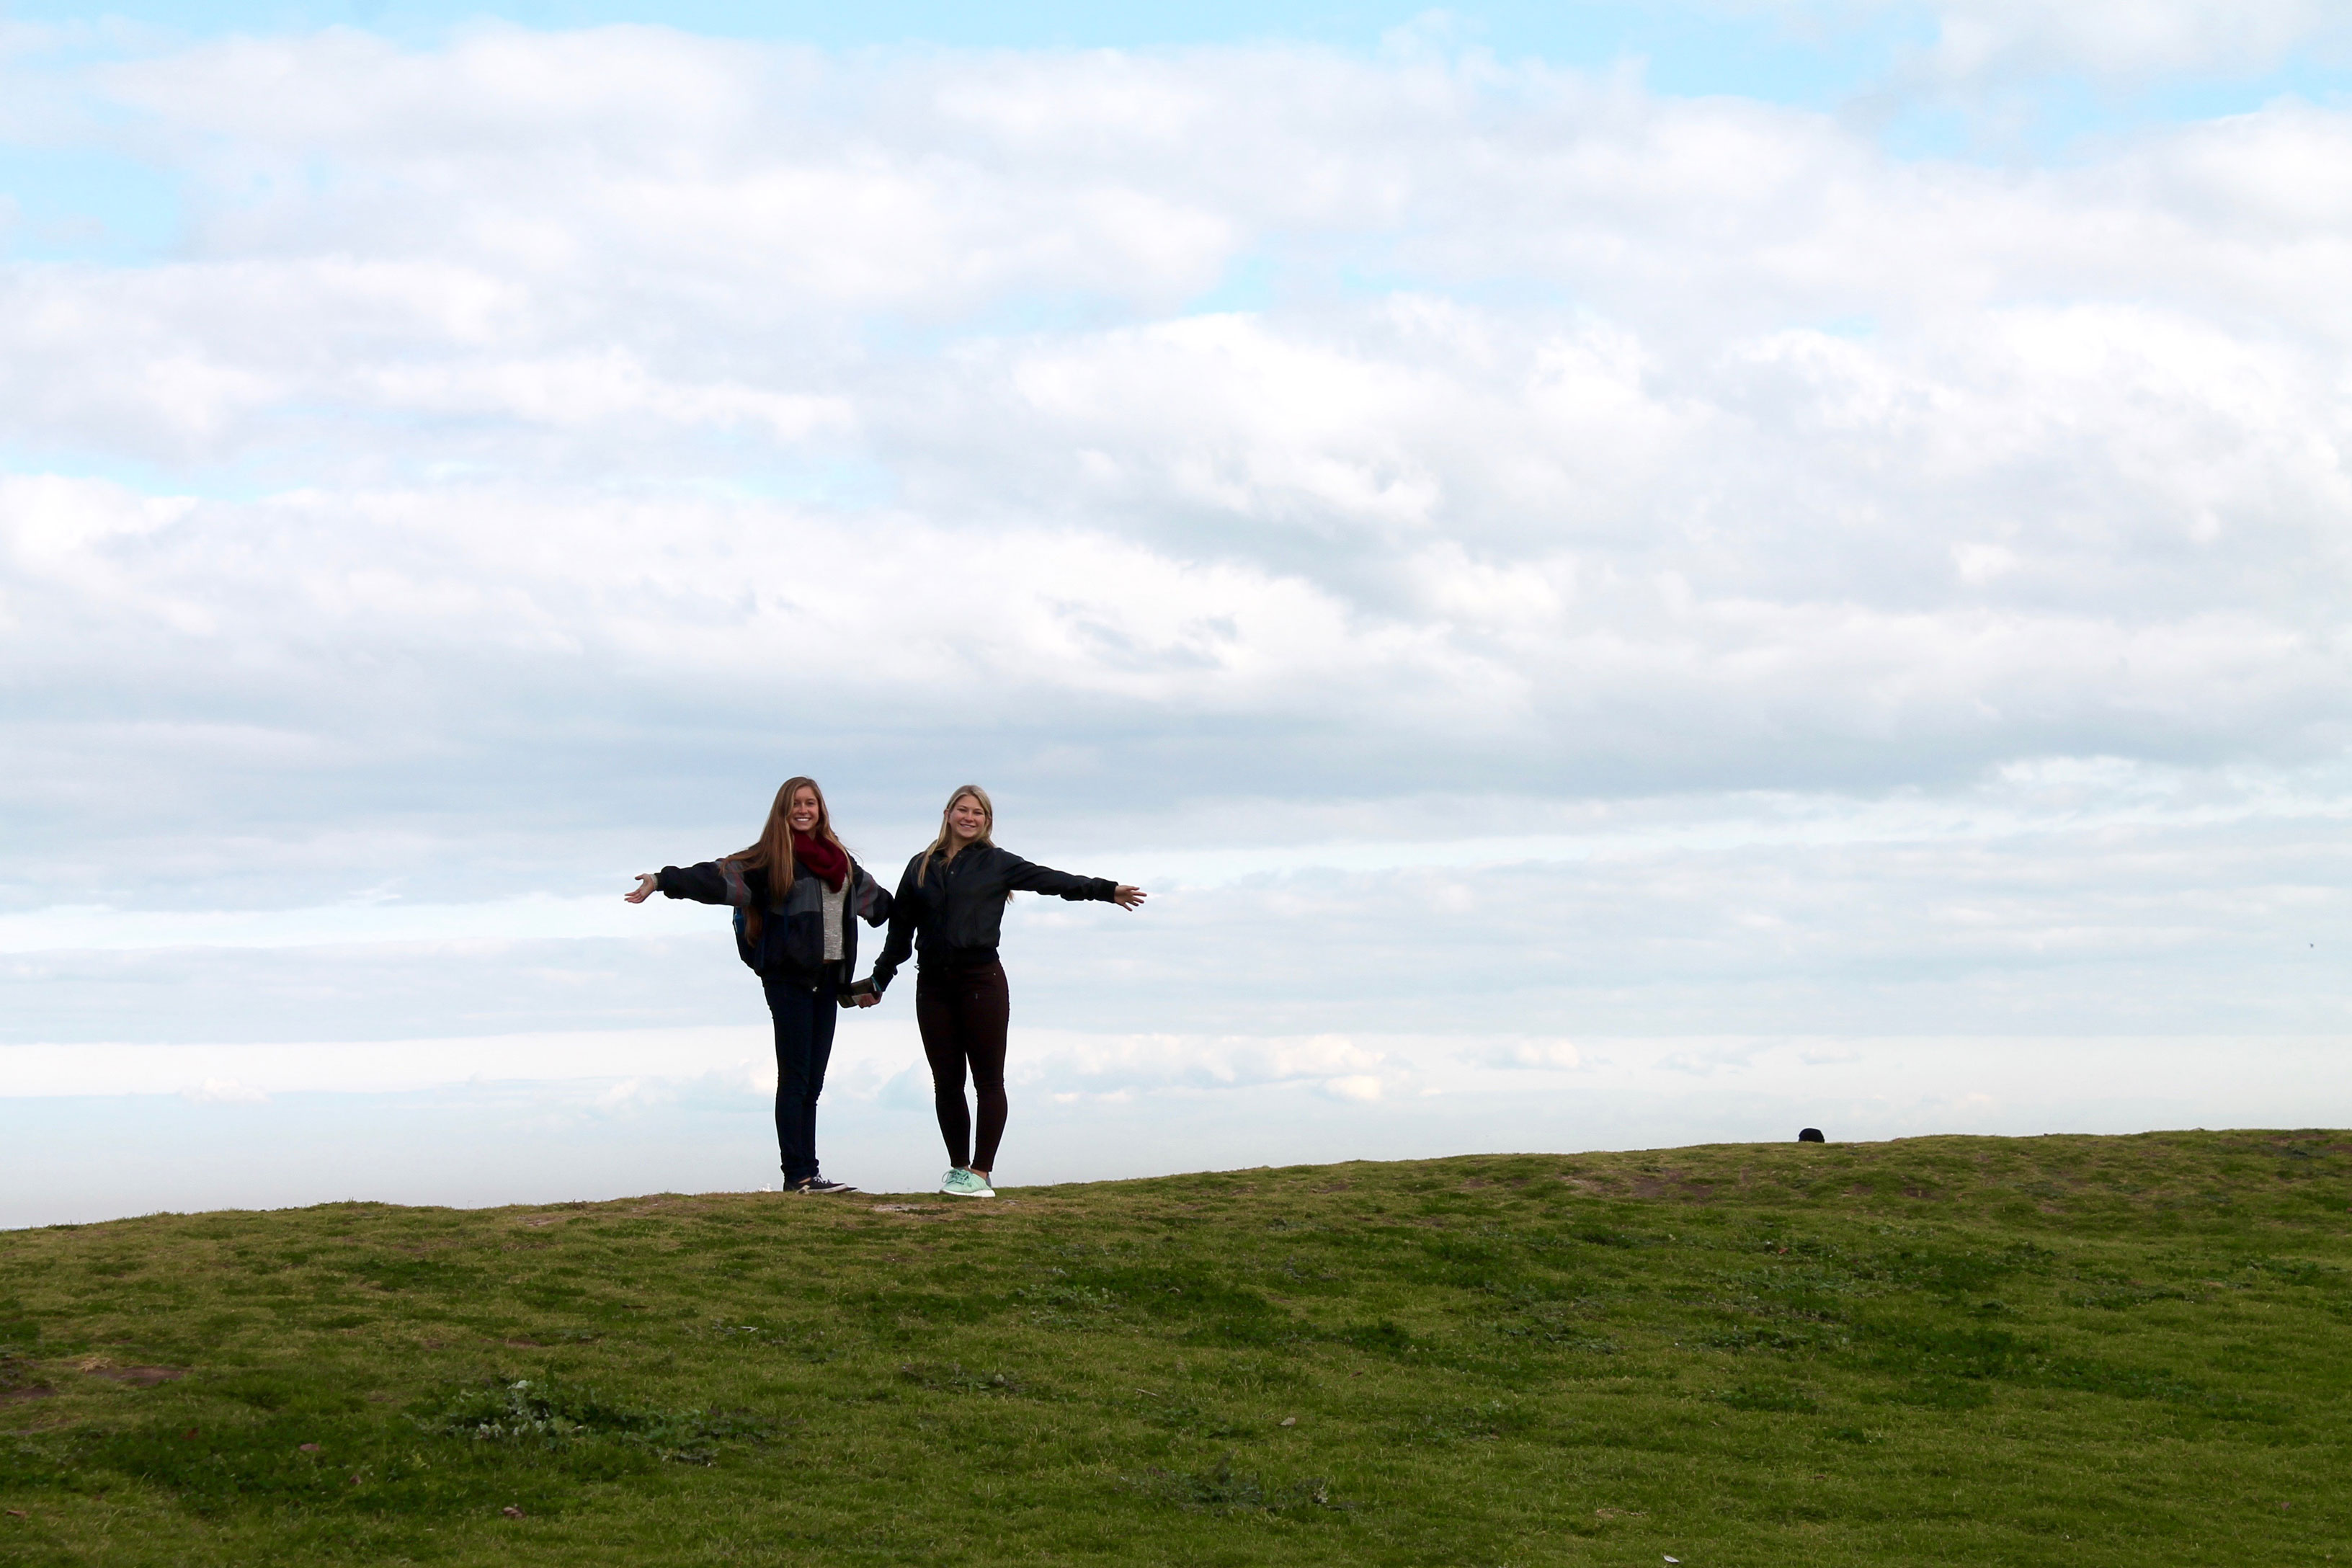 Two friends holding hands in a green pasture